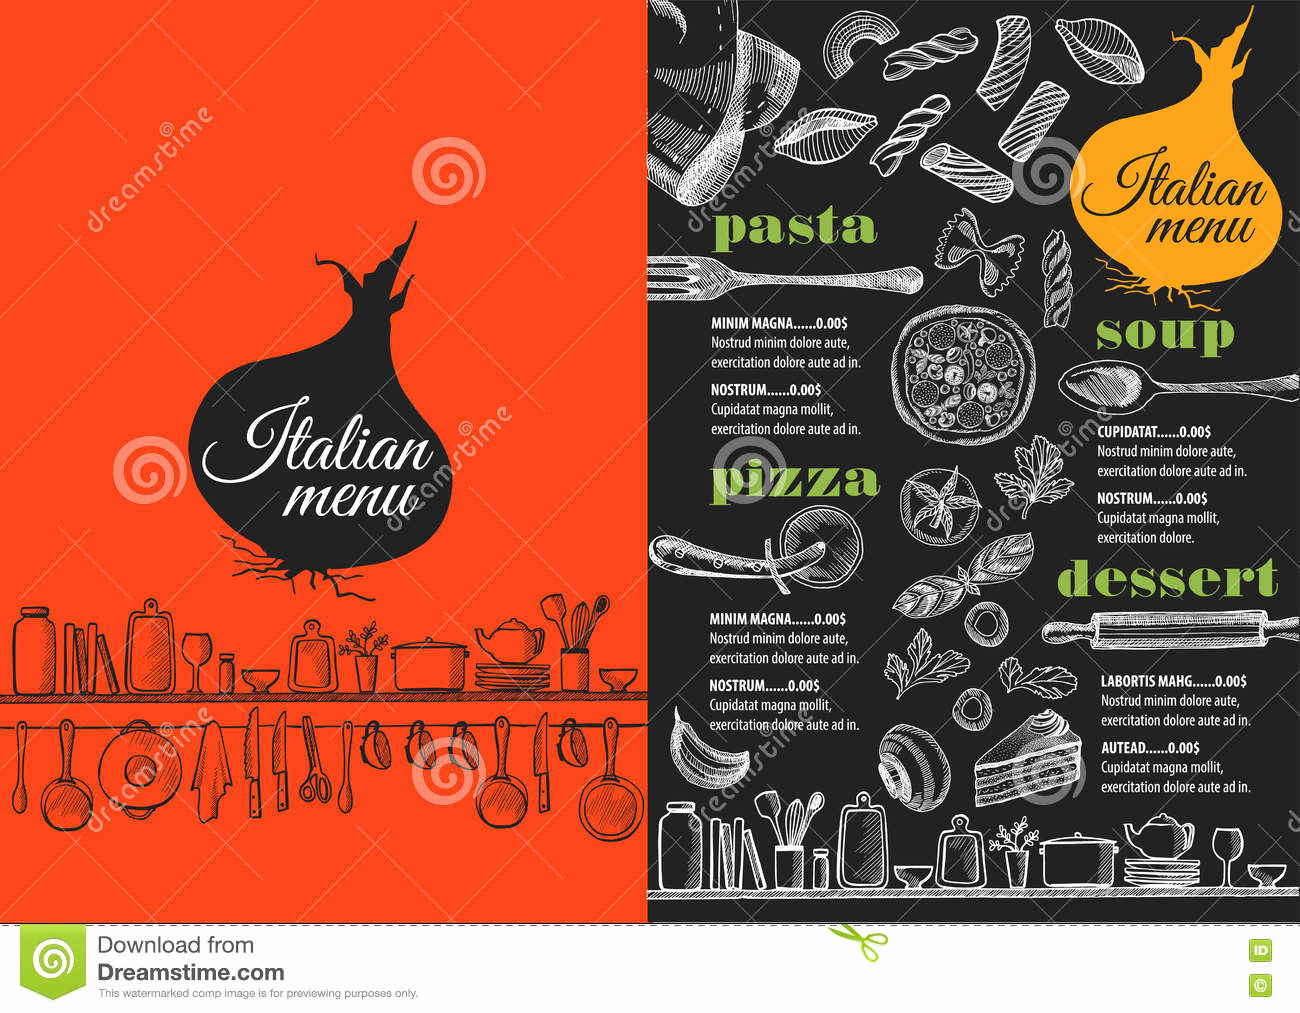 Italian Restaurant Menu Template Best Of Menu Italian Restaurant Food Template Placemat Stock